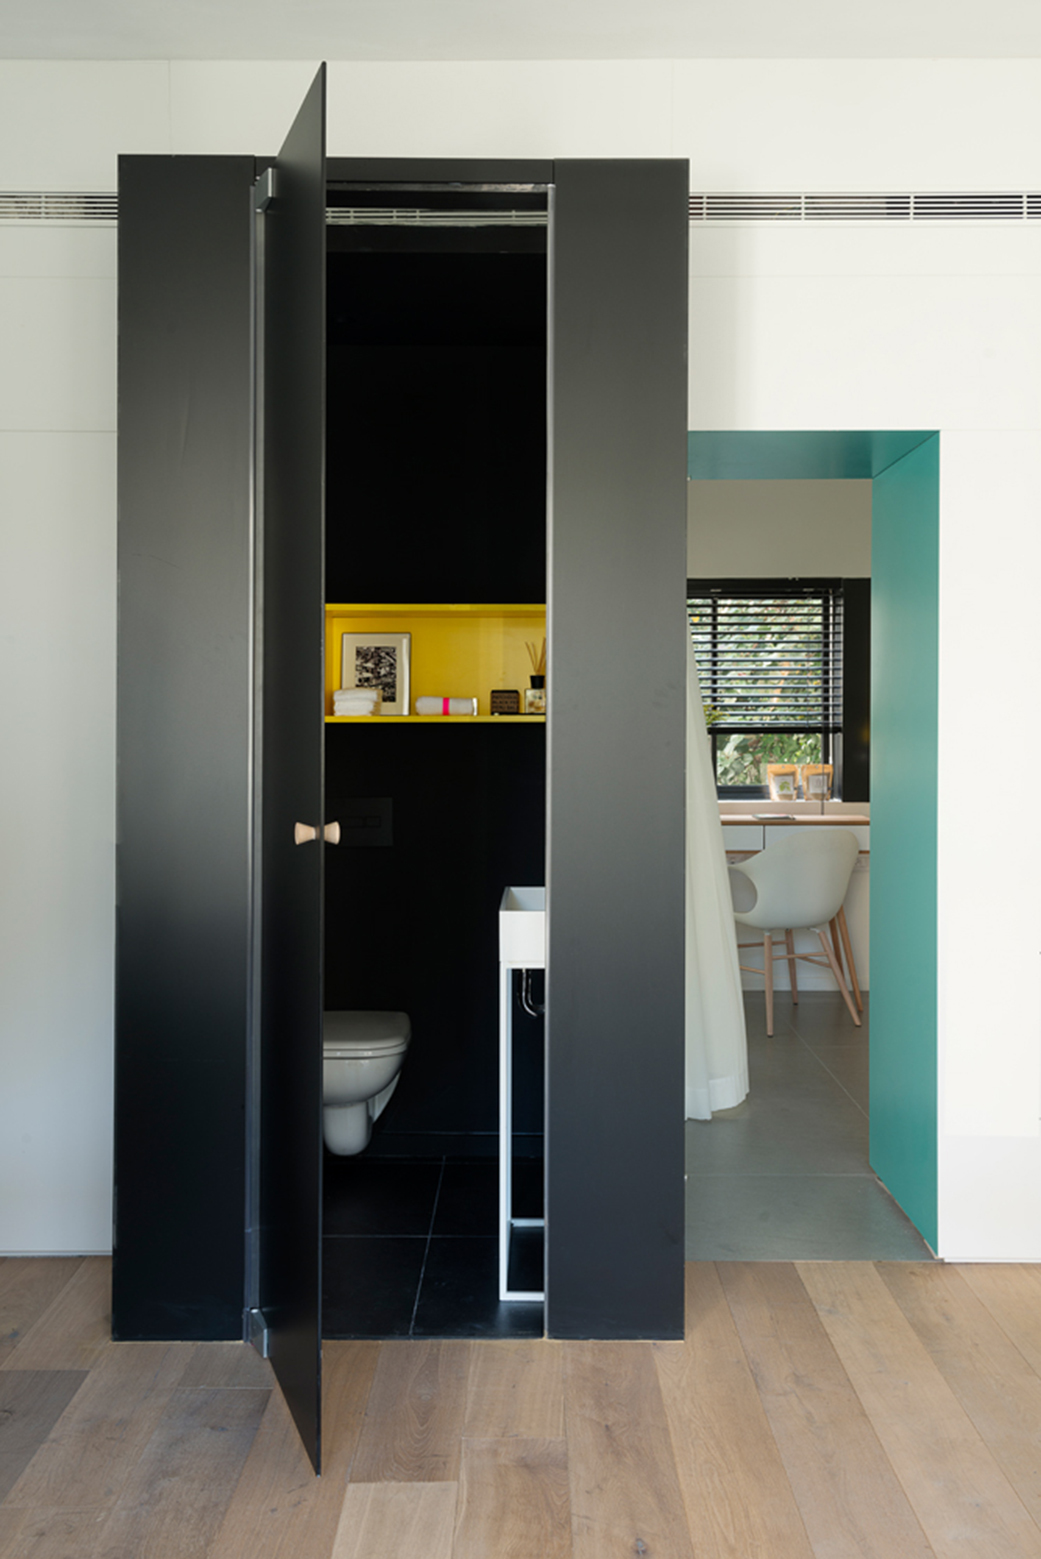 Apartment-in-Tel-Aviv-Small-Apartment-Maayan-Zusman-Interior-Design-Tel-Aviv-Toilet-Humble-Homes